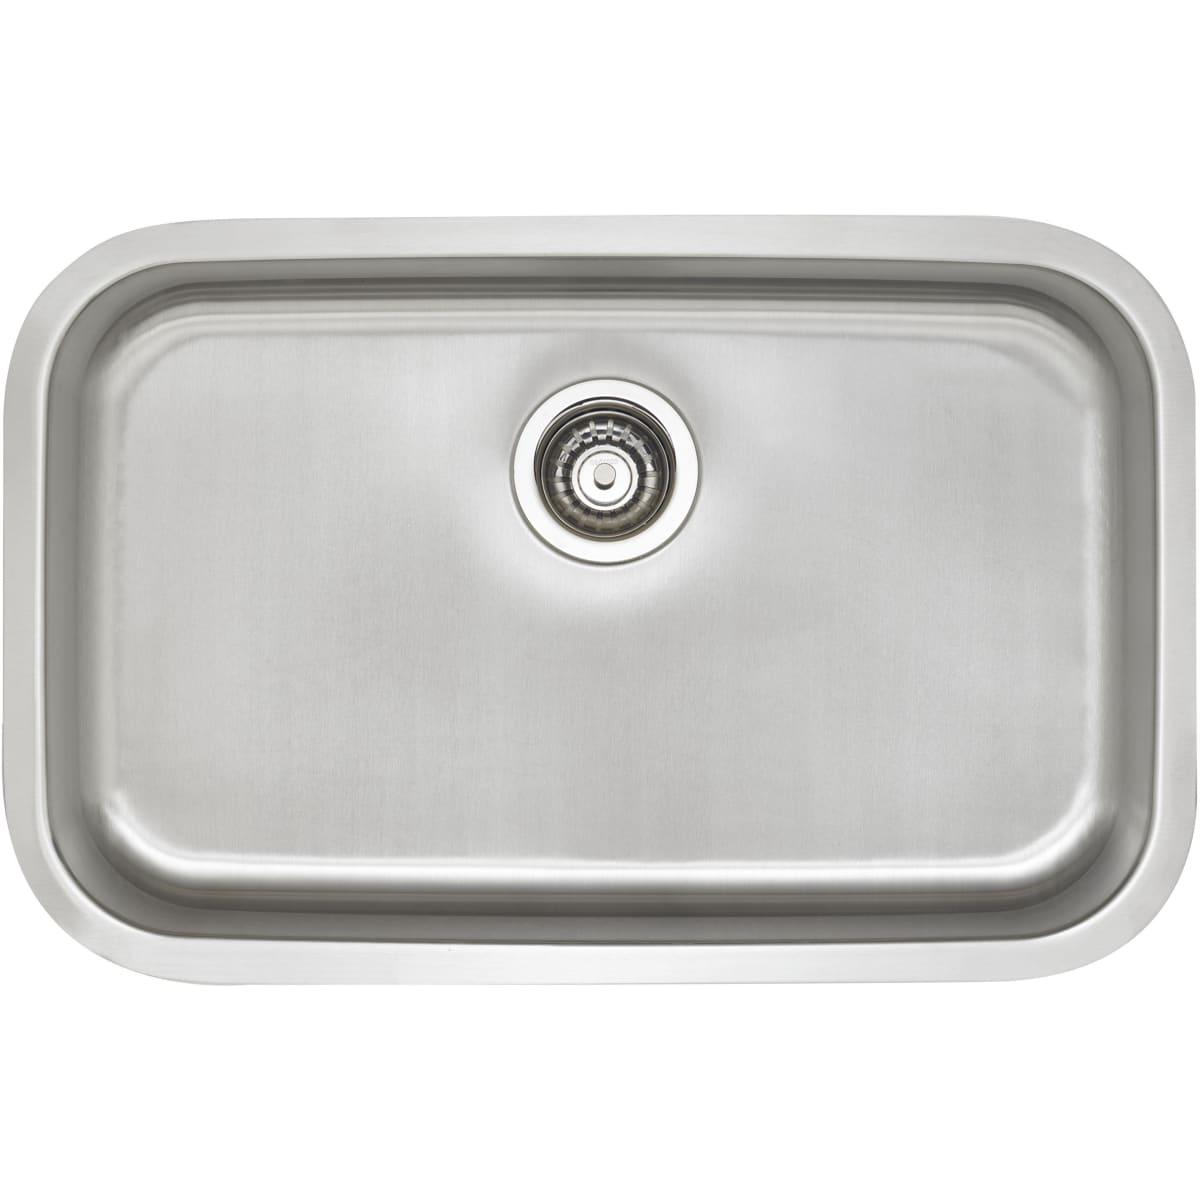 "Blanco Stellar 28"" Single Basin Undermount Stainless Steel Kitchen Sink"